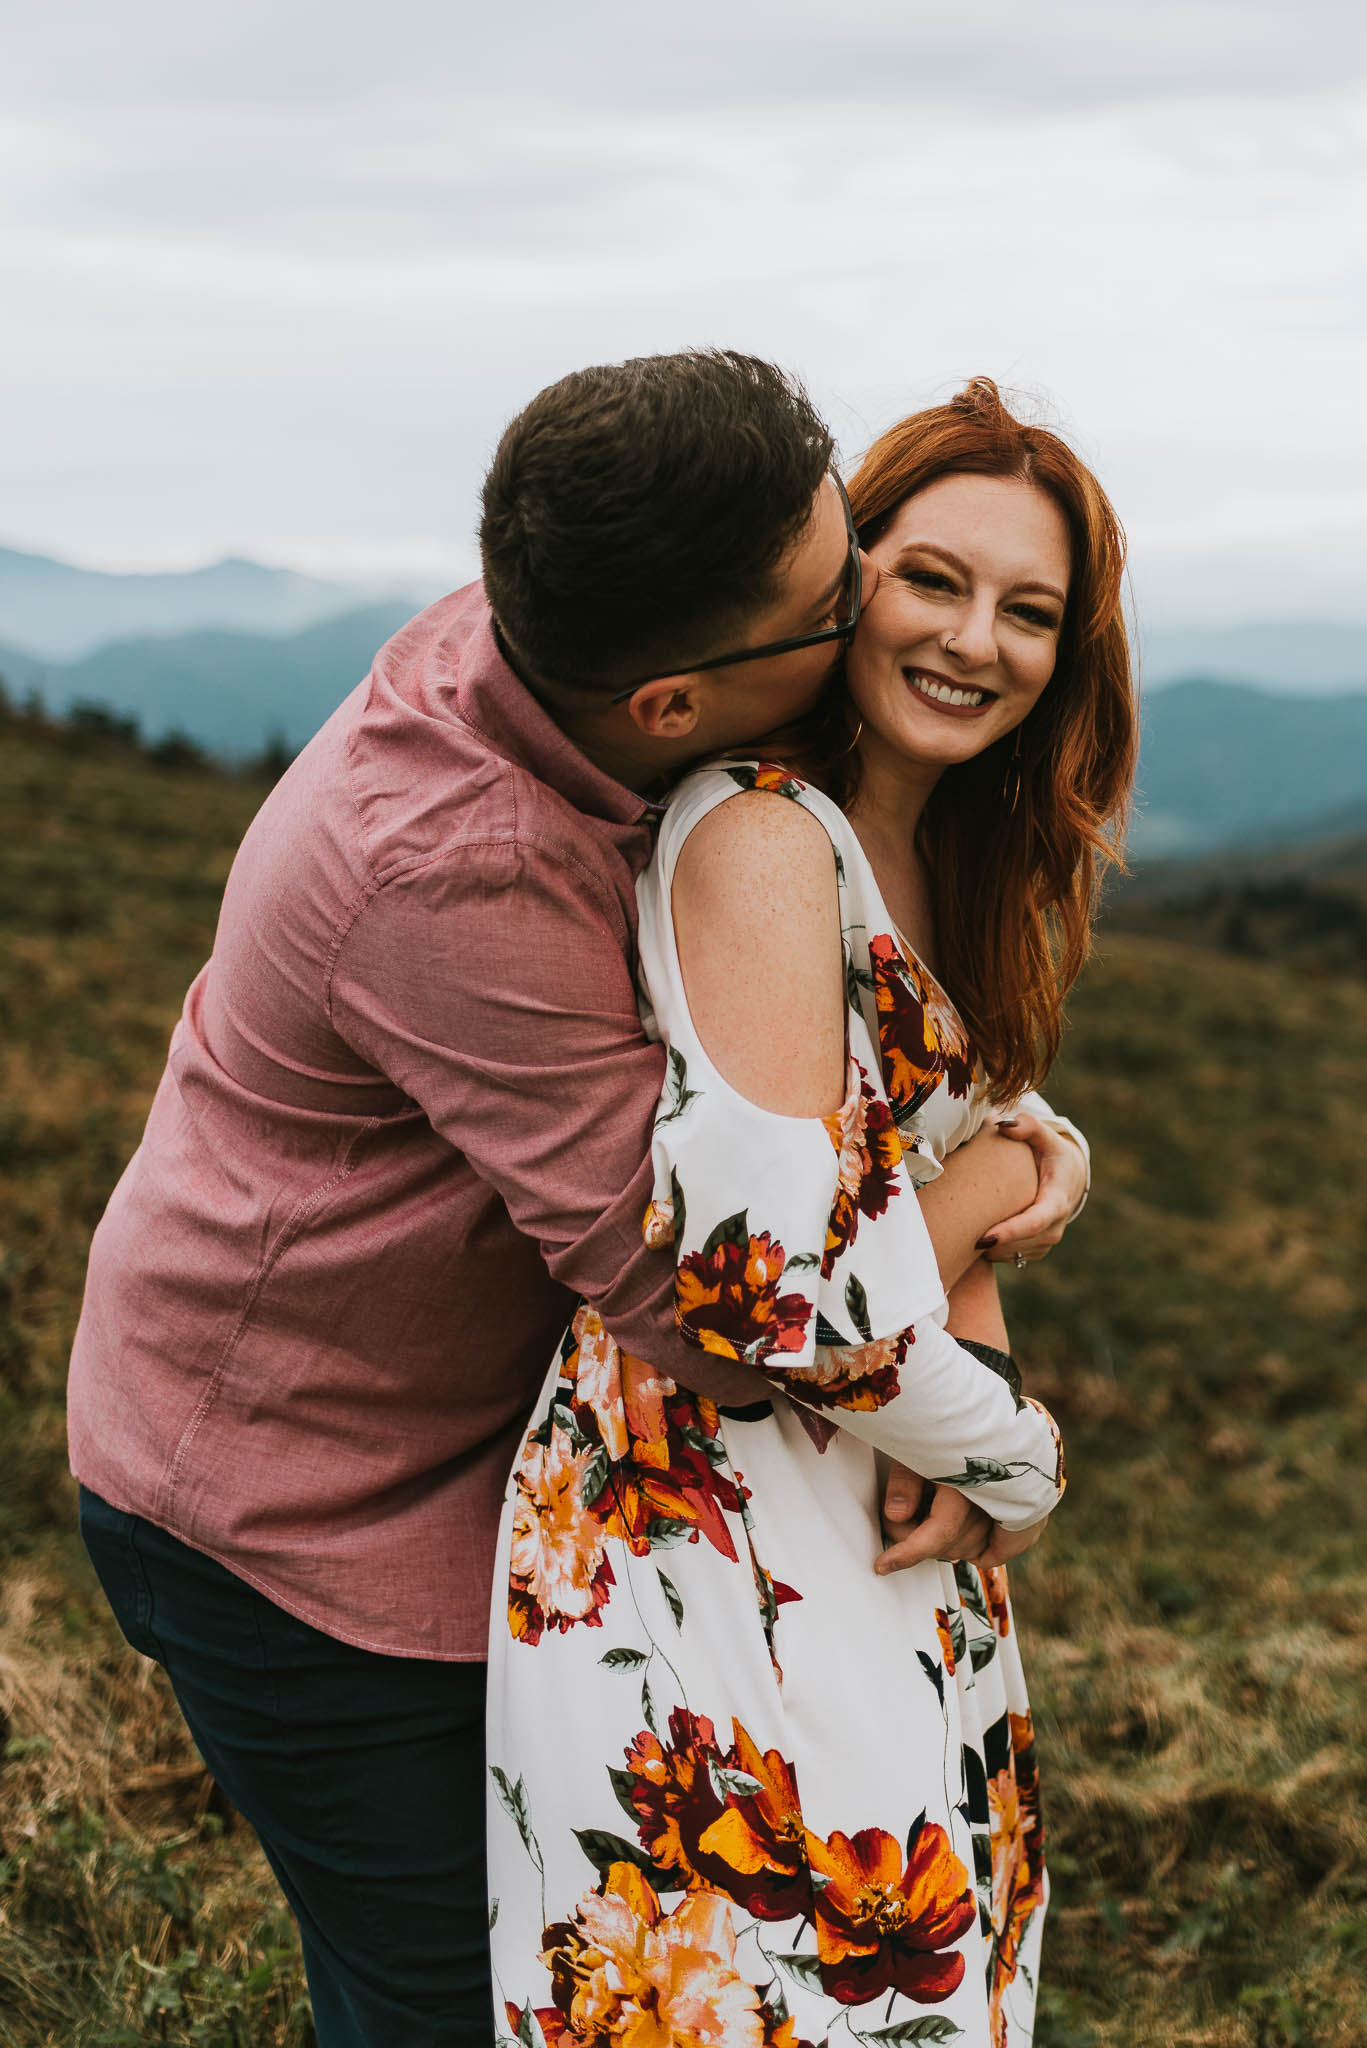 Roan Mountain Engagement Session Northeast Tennessee Wedding Photographers, East Tennessee Wedding Photographers, Kingsport, TN Wedding Photographers, Knoxville, TN Wedding Photographers (1 of 1)-10.jpg